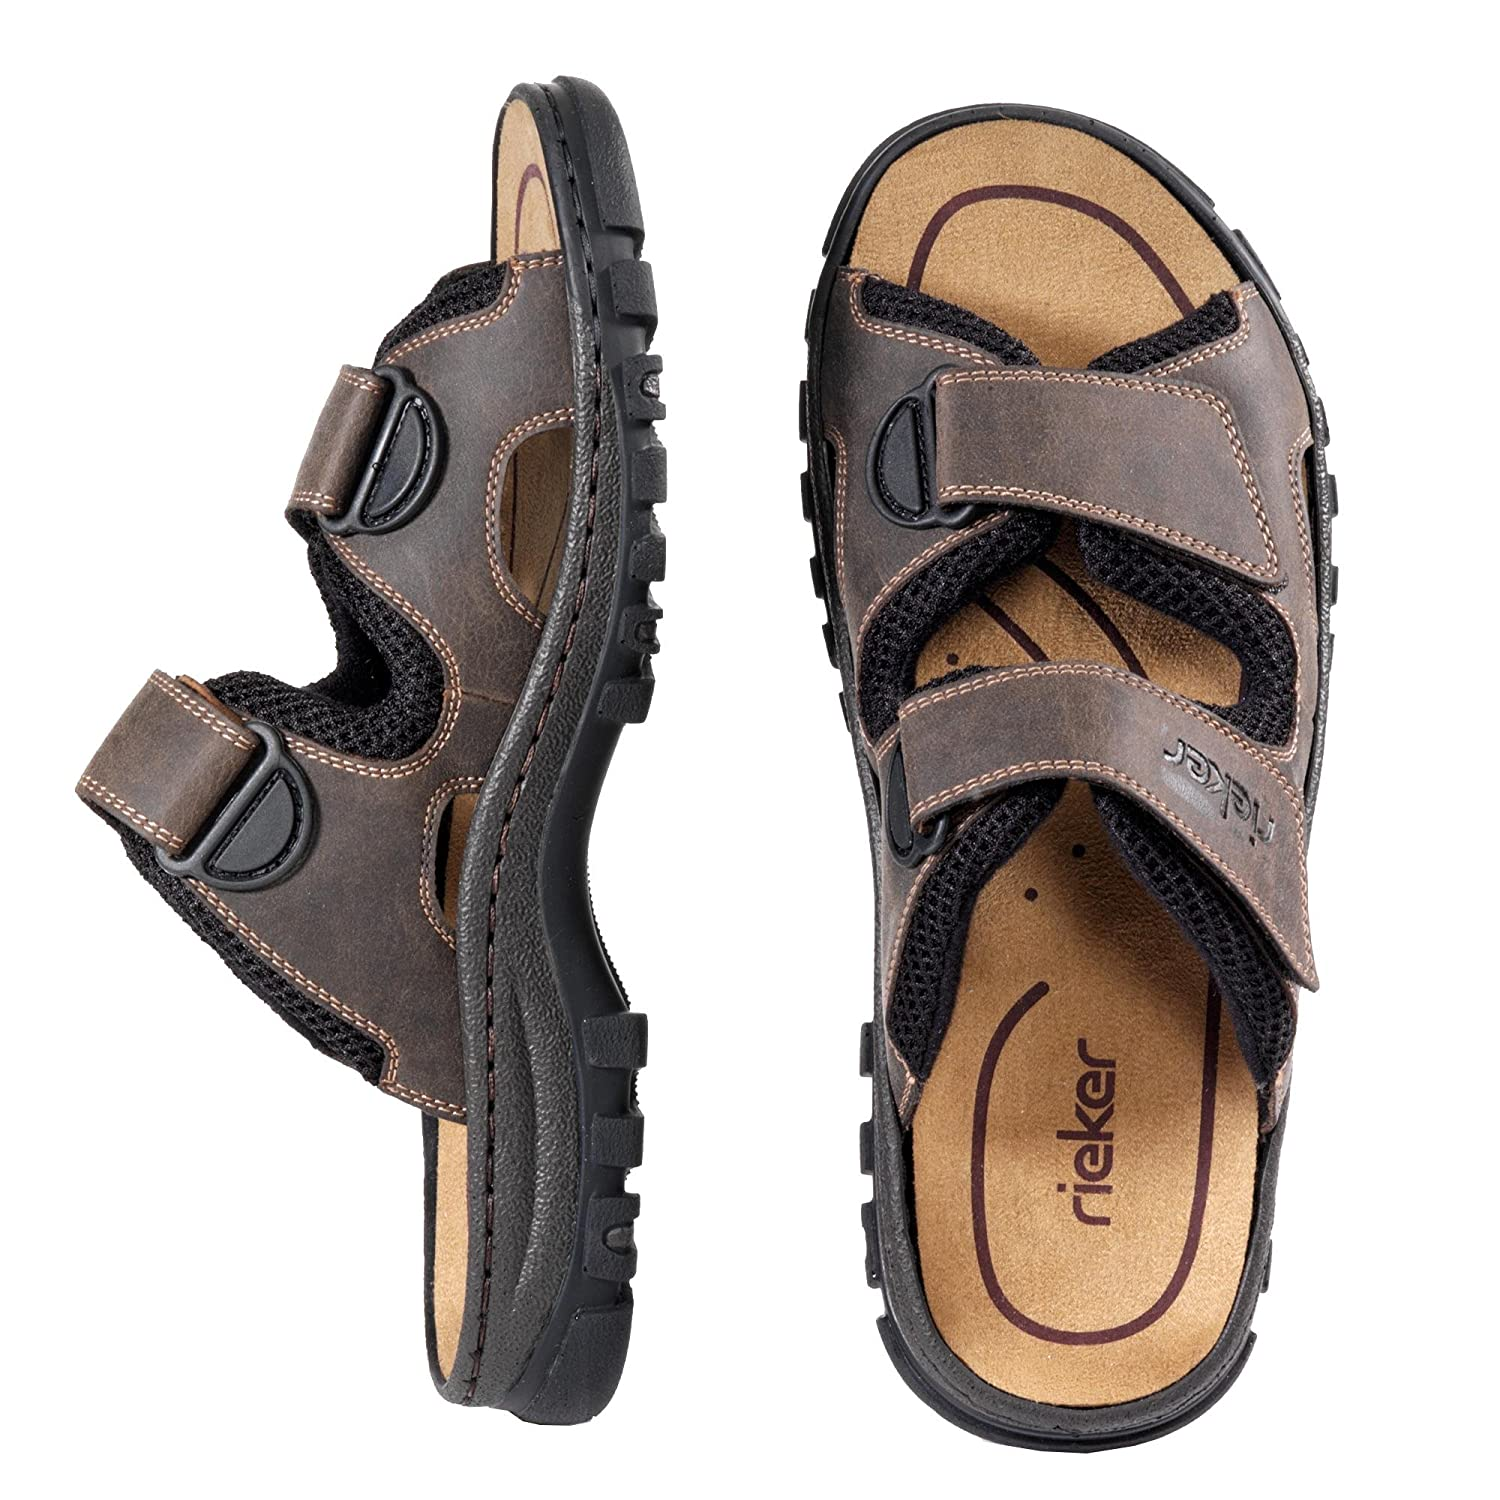 caef4c5022989 Rieker 25092-26 Clogs And Mules Mens: Amazon.co.uk: Shoes & Bags